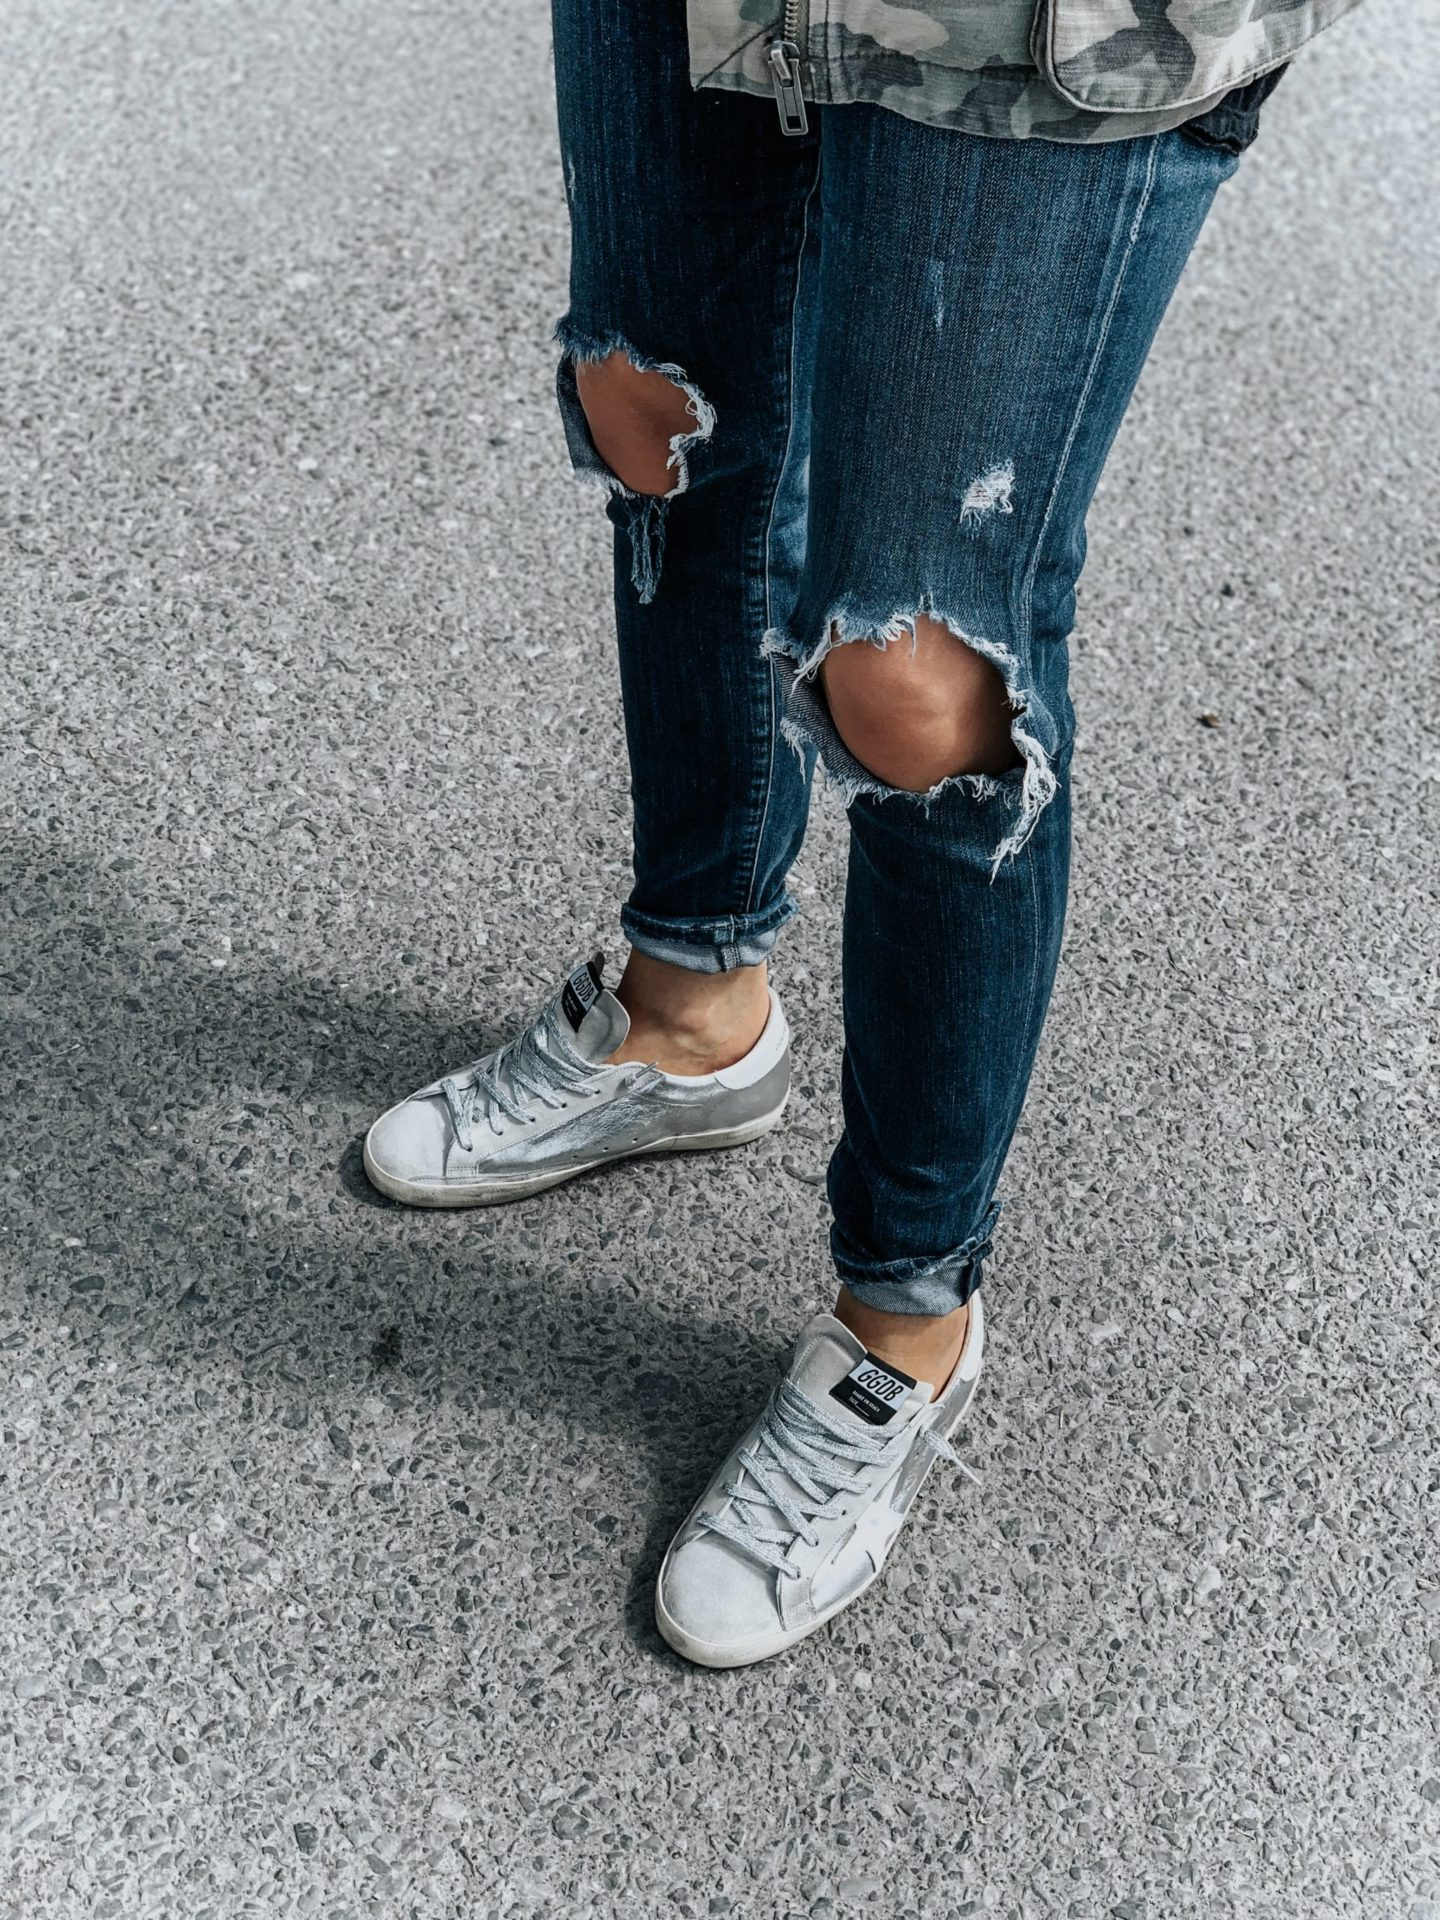 silver golden goose sneakers on girl